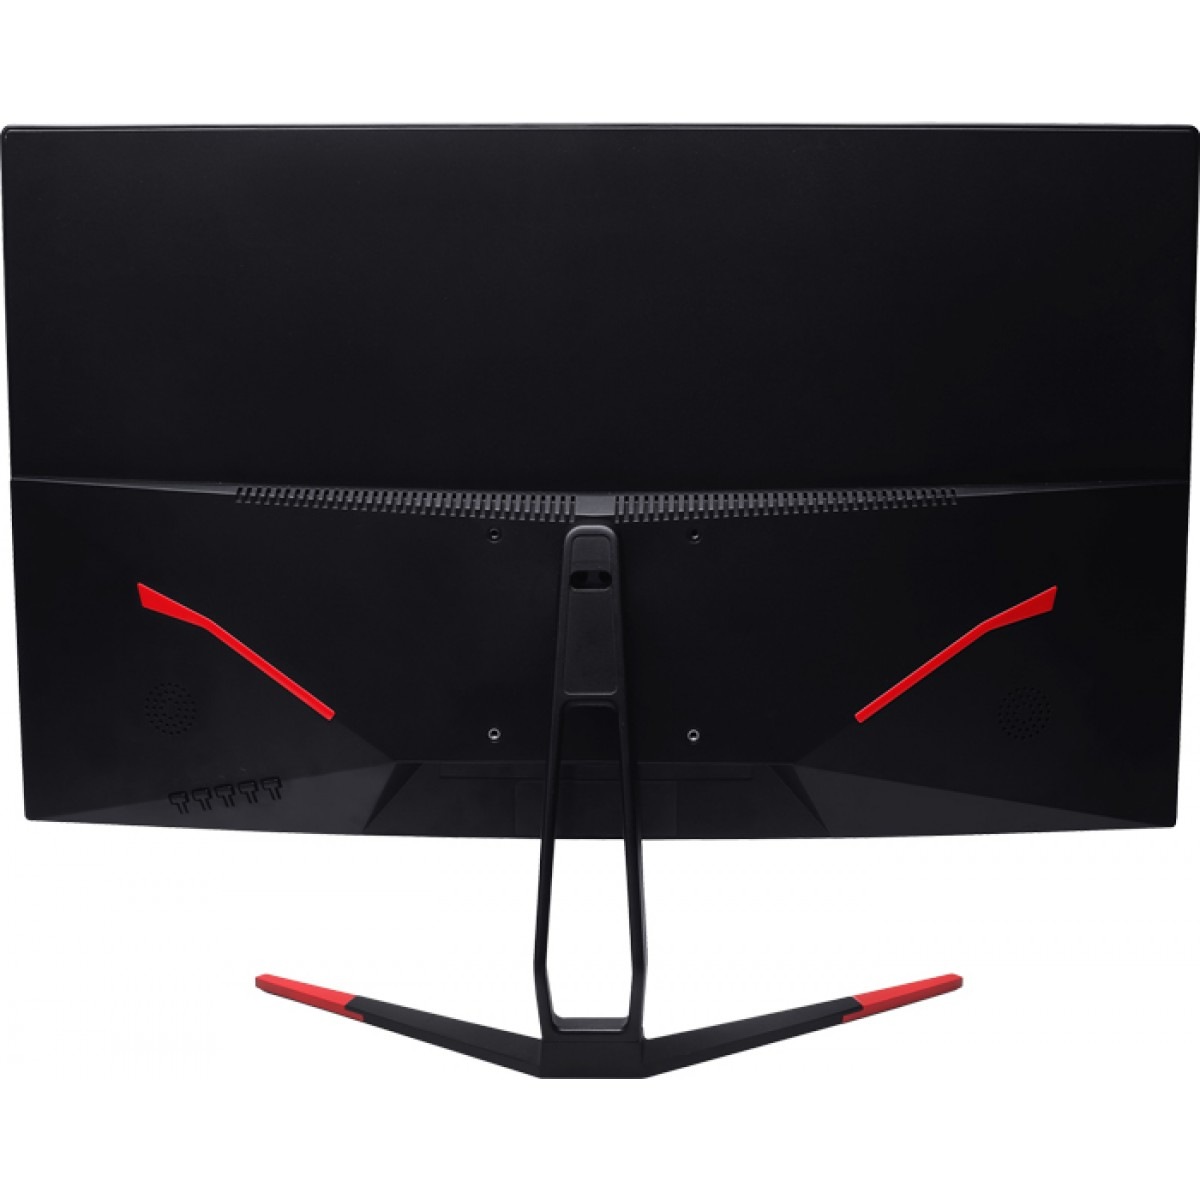 Monitor Gamer Curvo Bluecase 27 Pol, Full HD, 144Hz, 1ms(GTG), BM275GC - Open Box